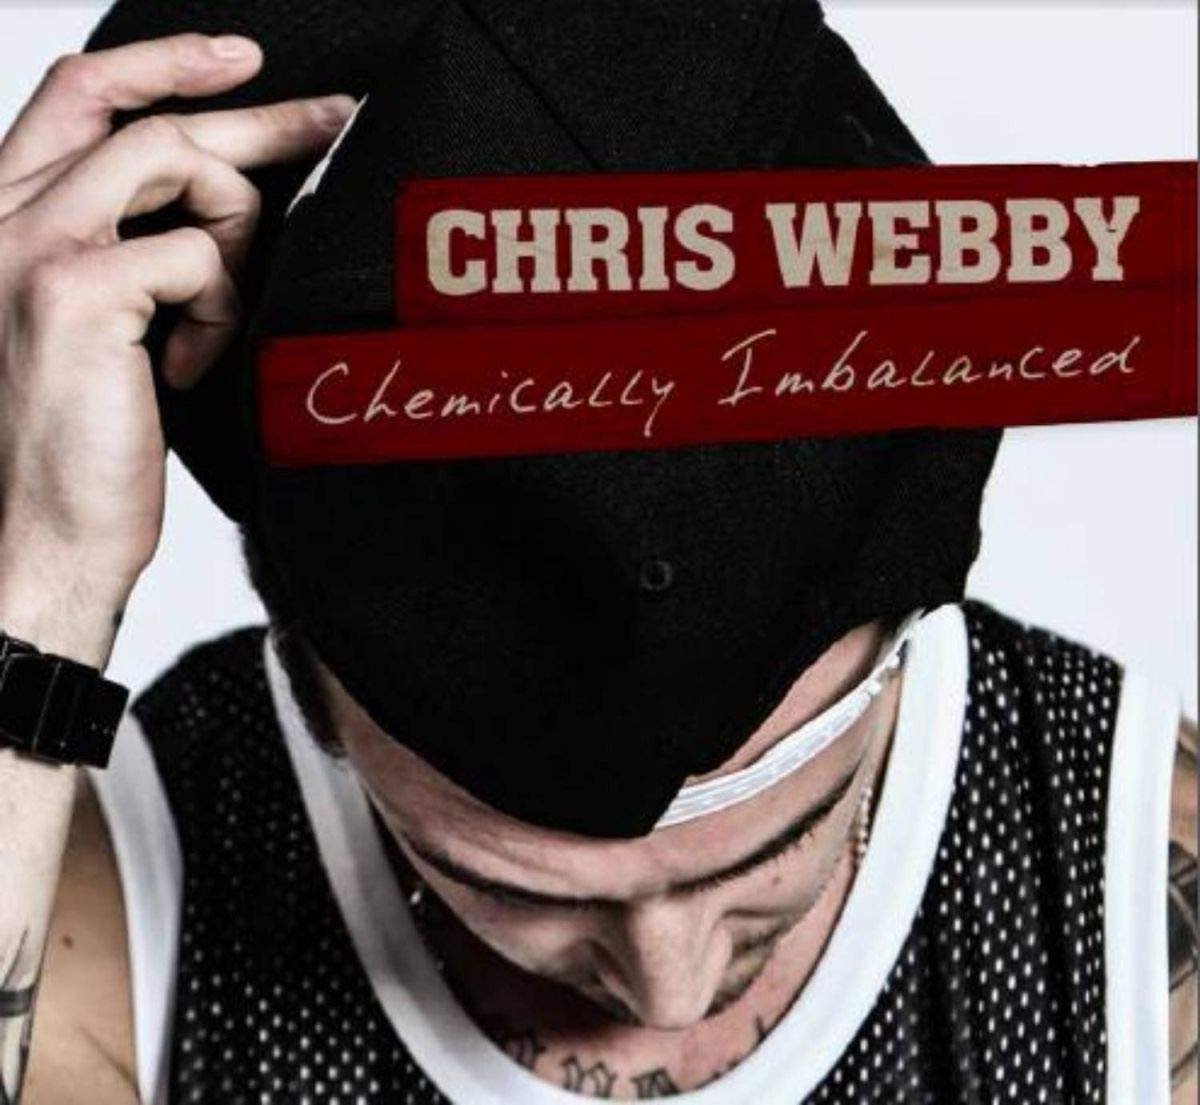 Chris webby chemically imbalanced free album download.